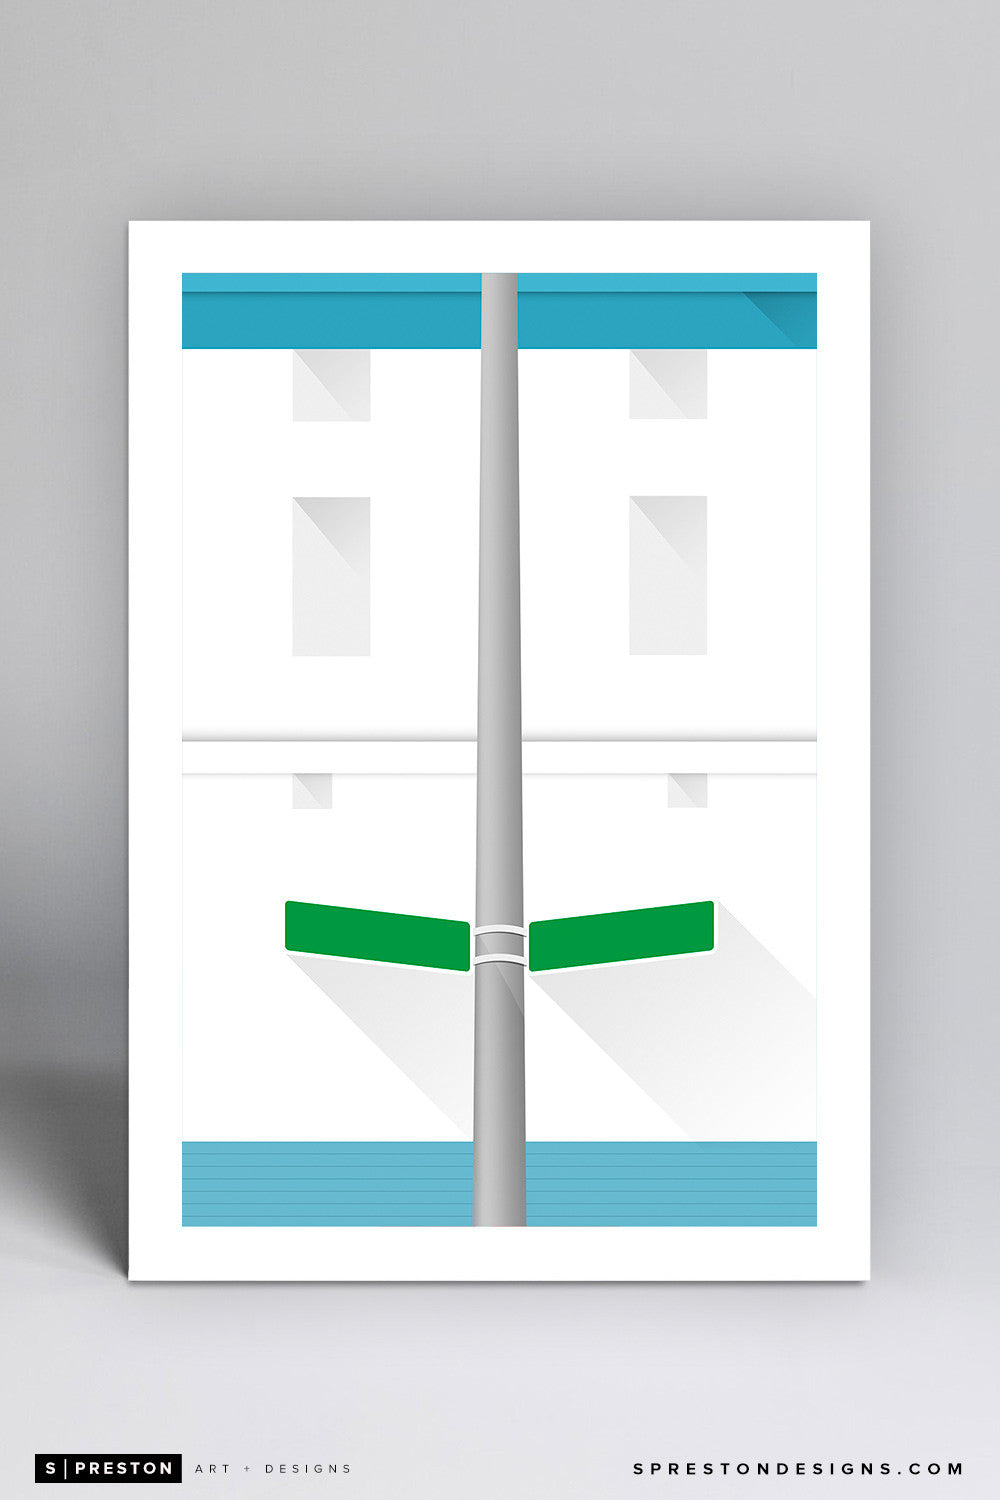 Minimalist Tiger Stadium - Detroit Tigers - S. Preston